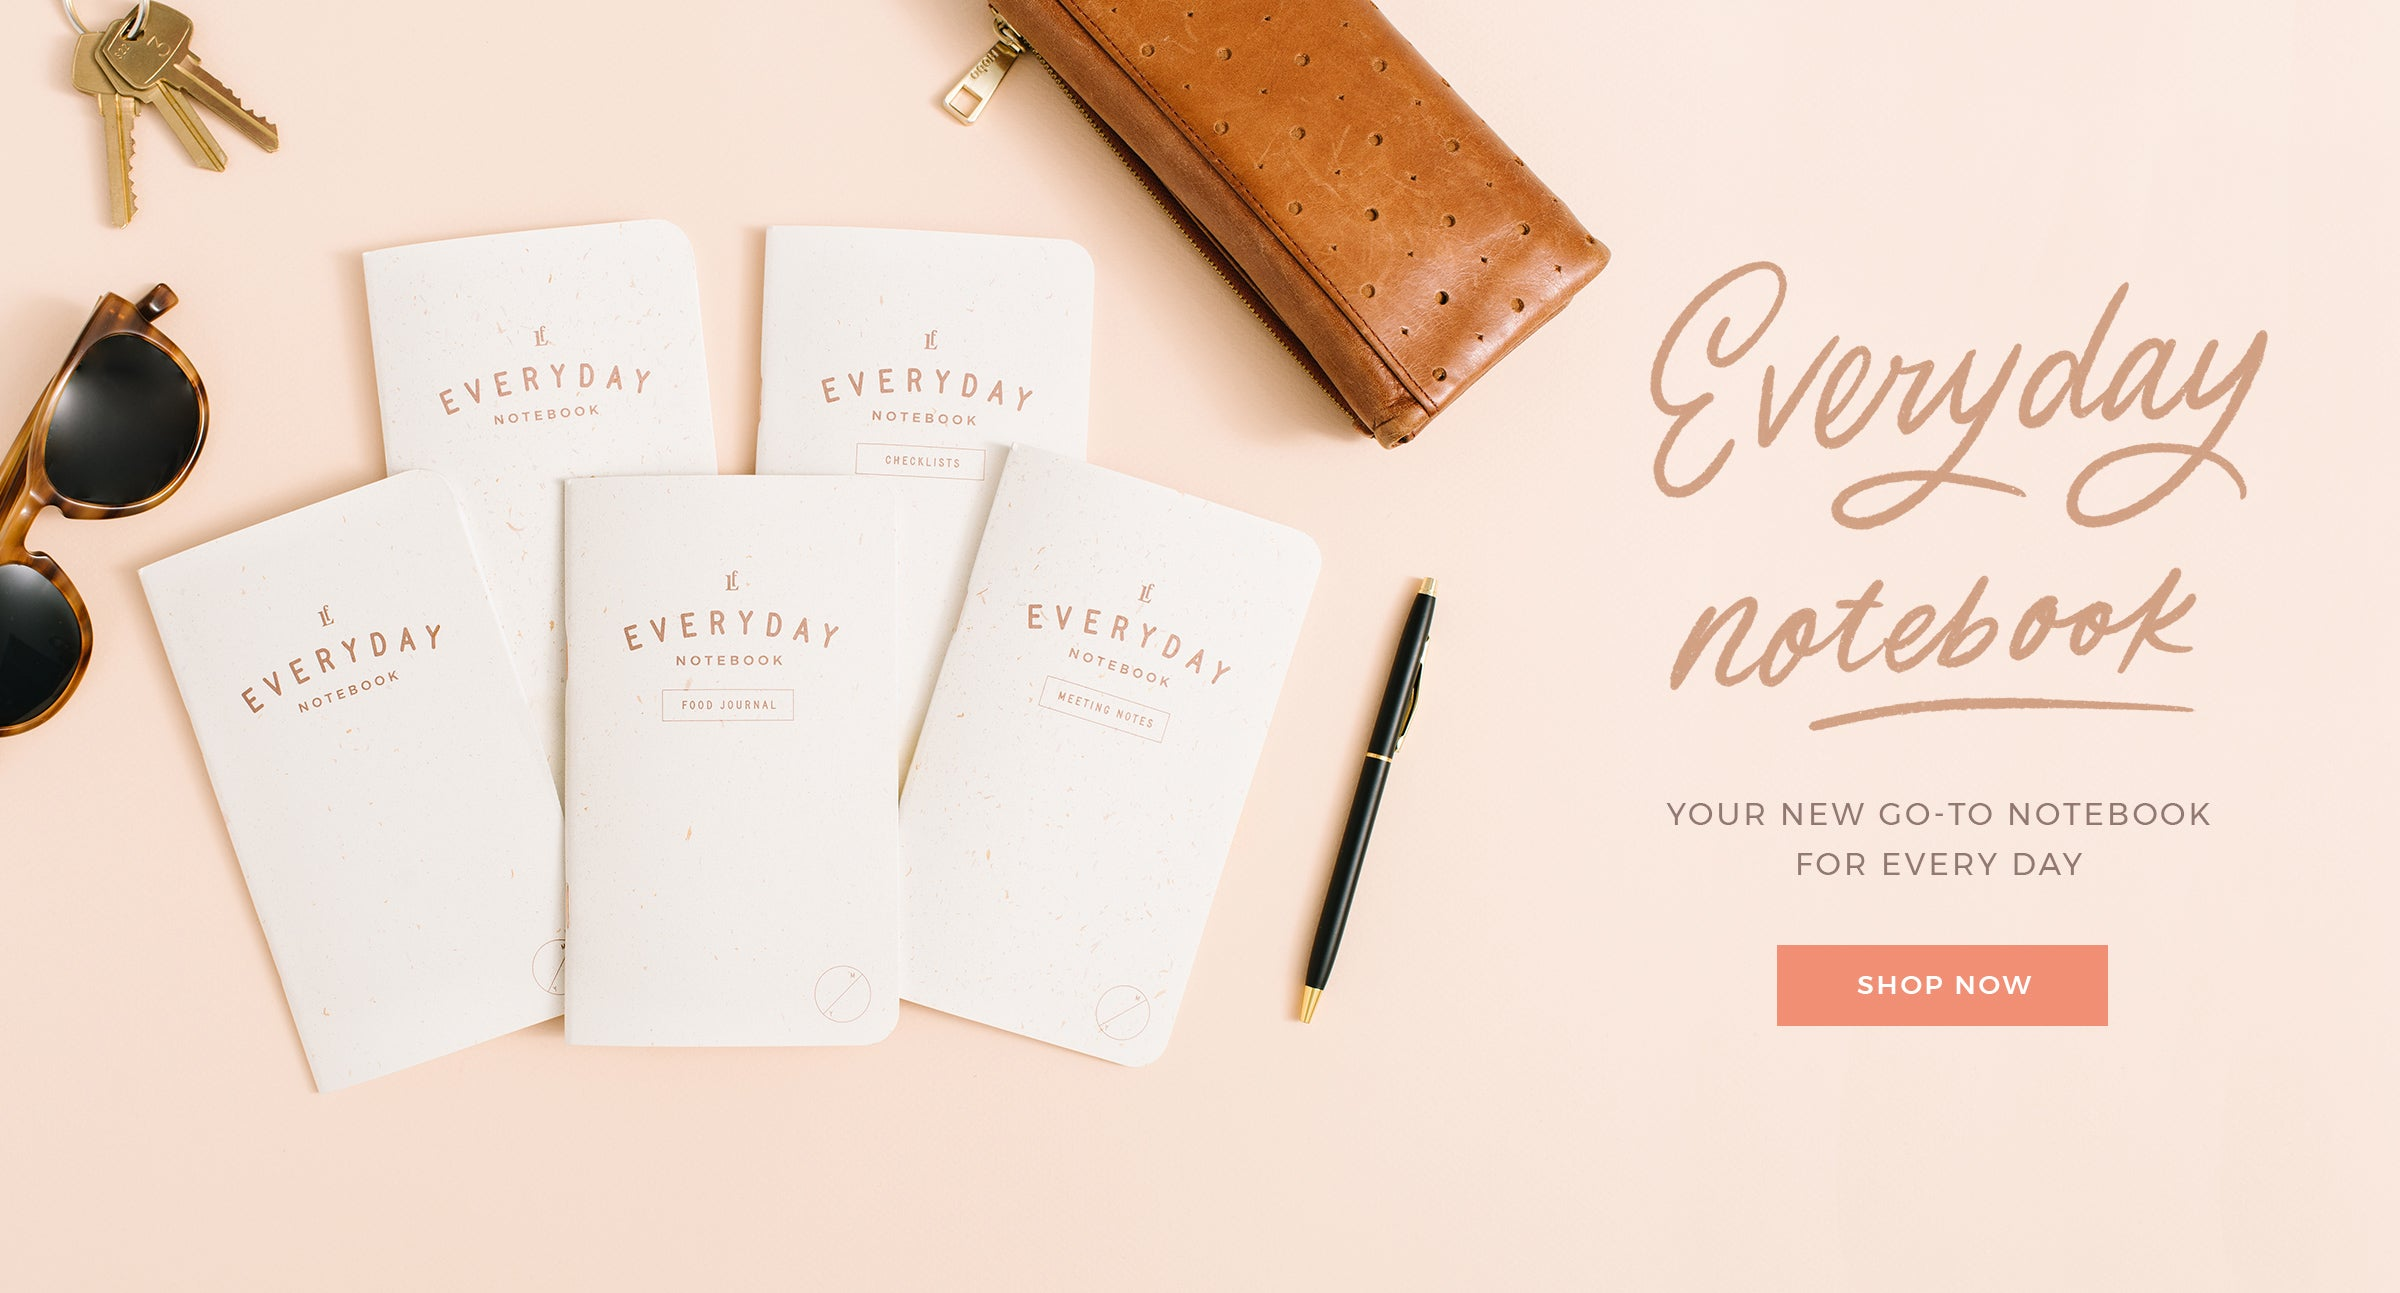 Everyday Notebook by Letterfolk